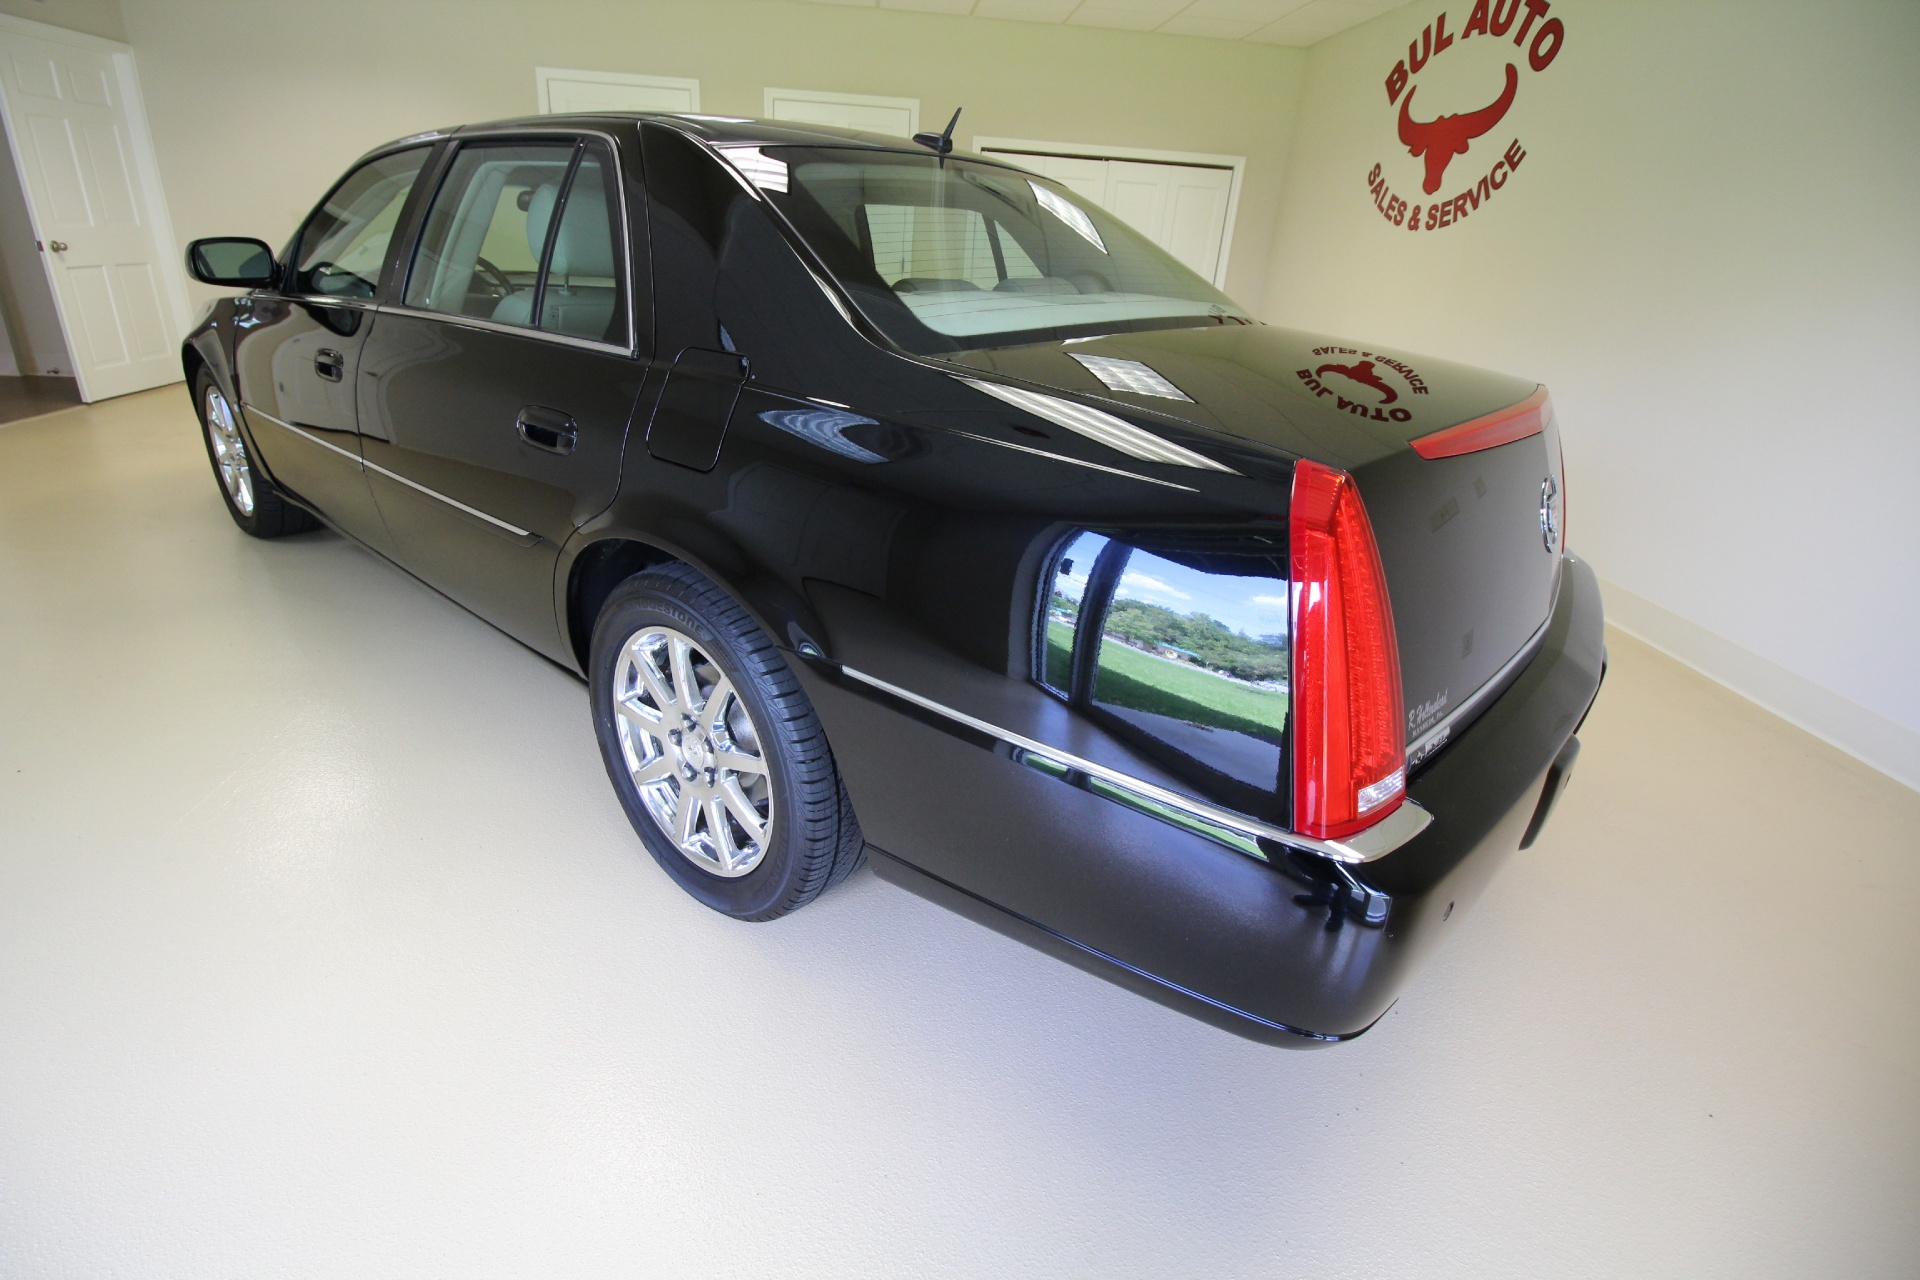 htm used i luxury albany condition c super low cadillac l miles dts nice superb